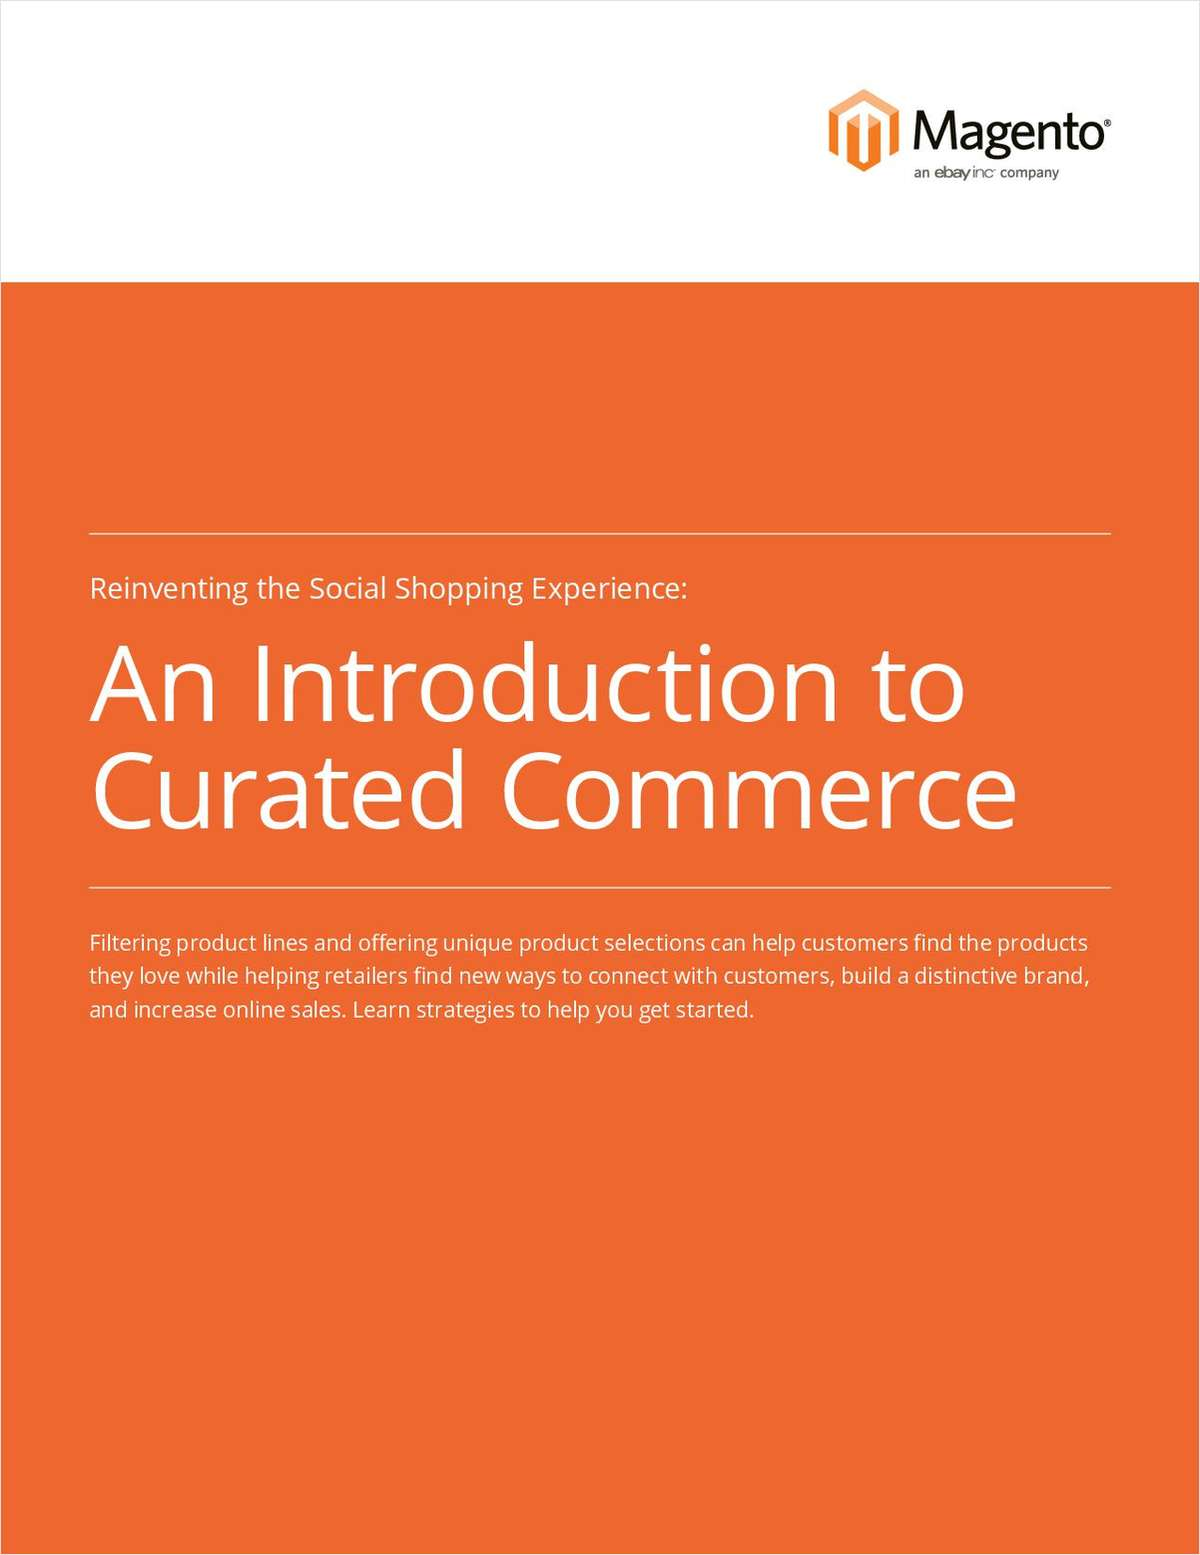 An Introduction to Curated Commerce